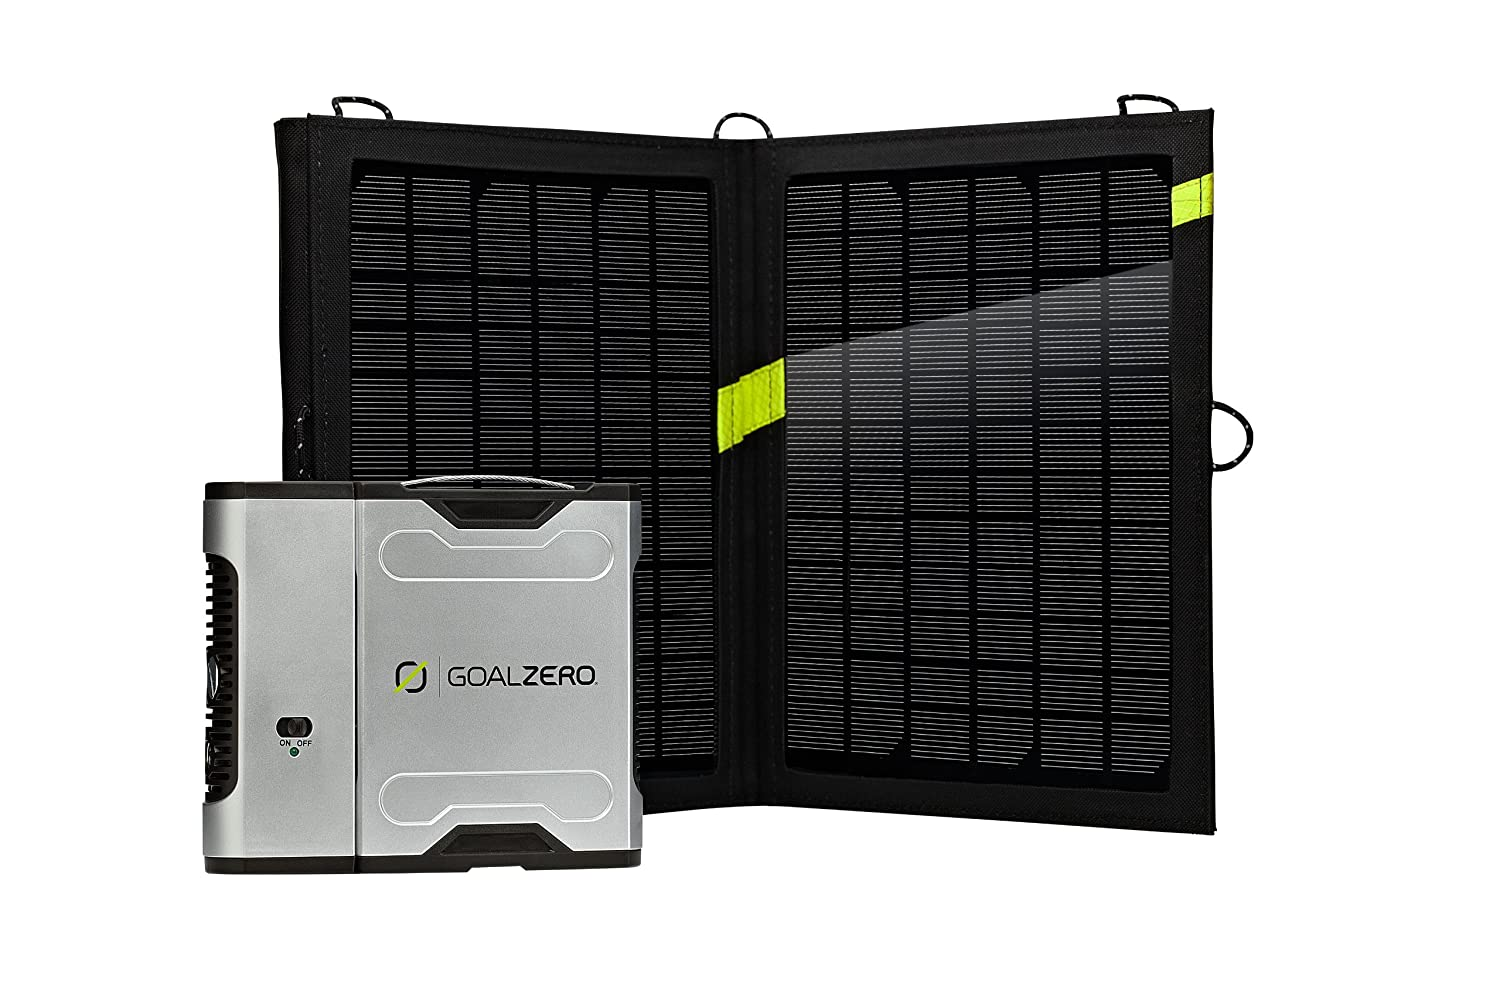 Goal Zero 42005 Sherpa 50 Solar Recharging Kit with Inverter